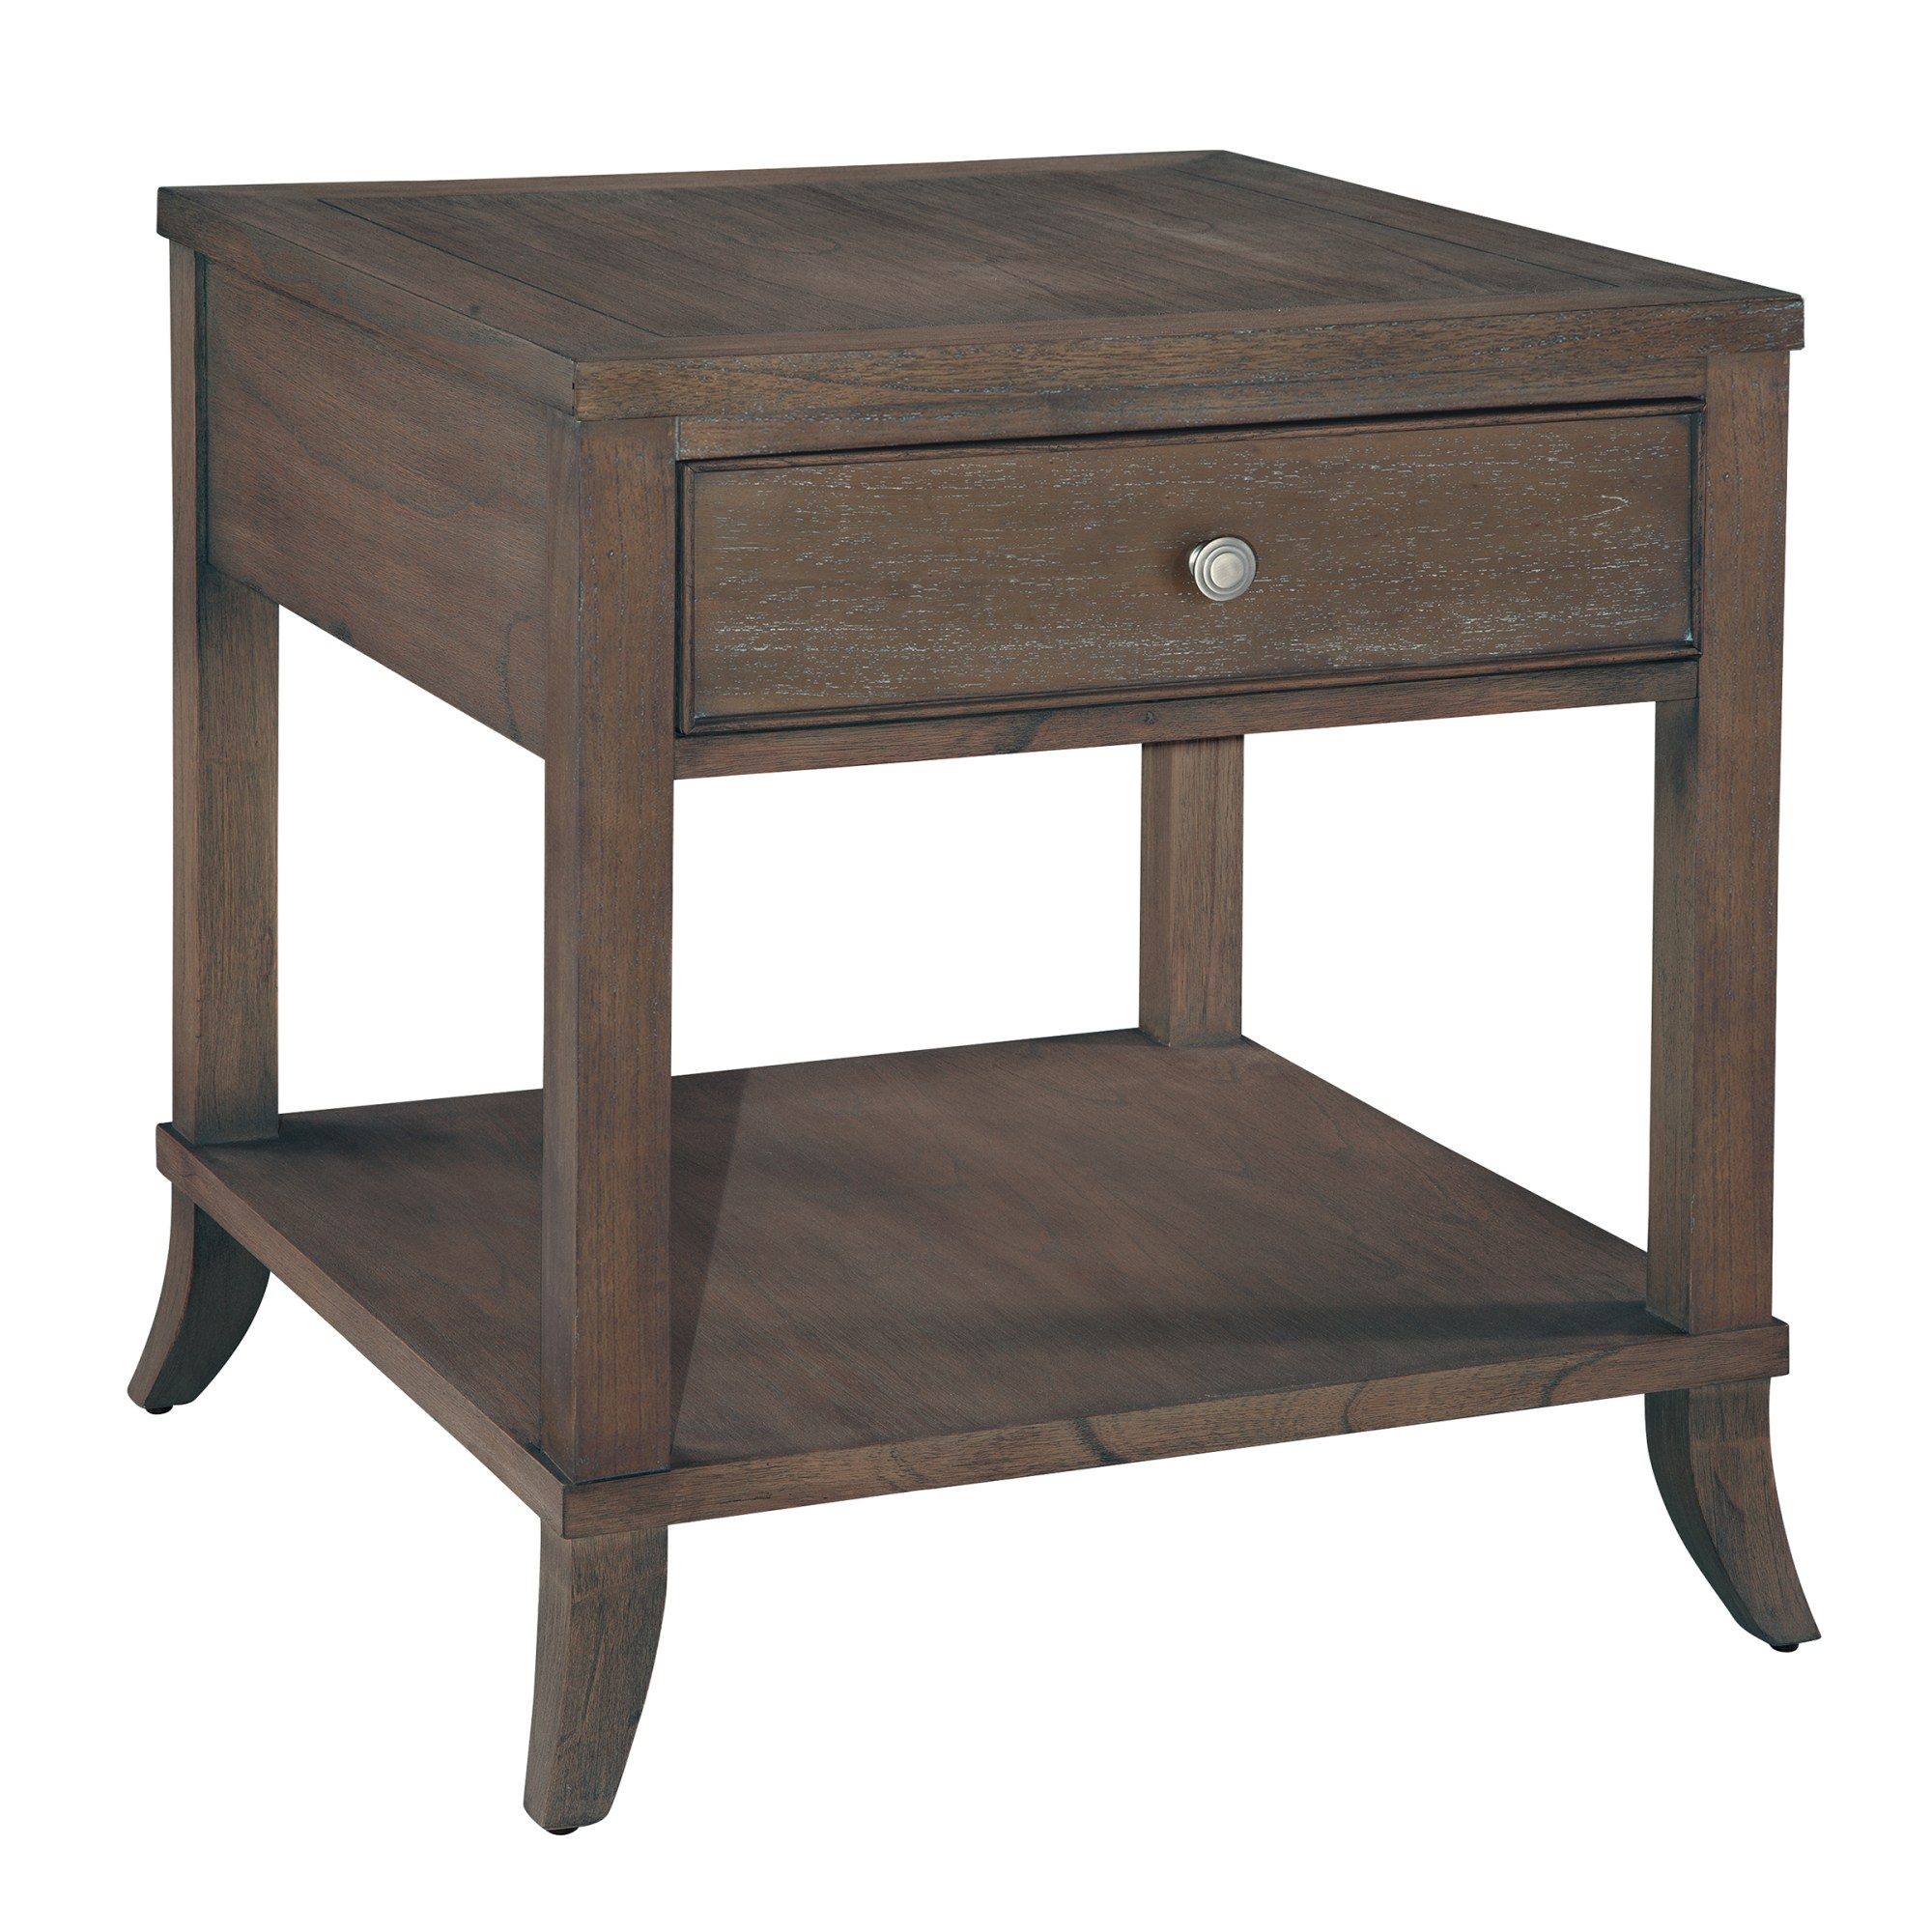 Image for 952203SU Urban Retreat Drawer Lamp Table from Hekman Official Website